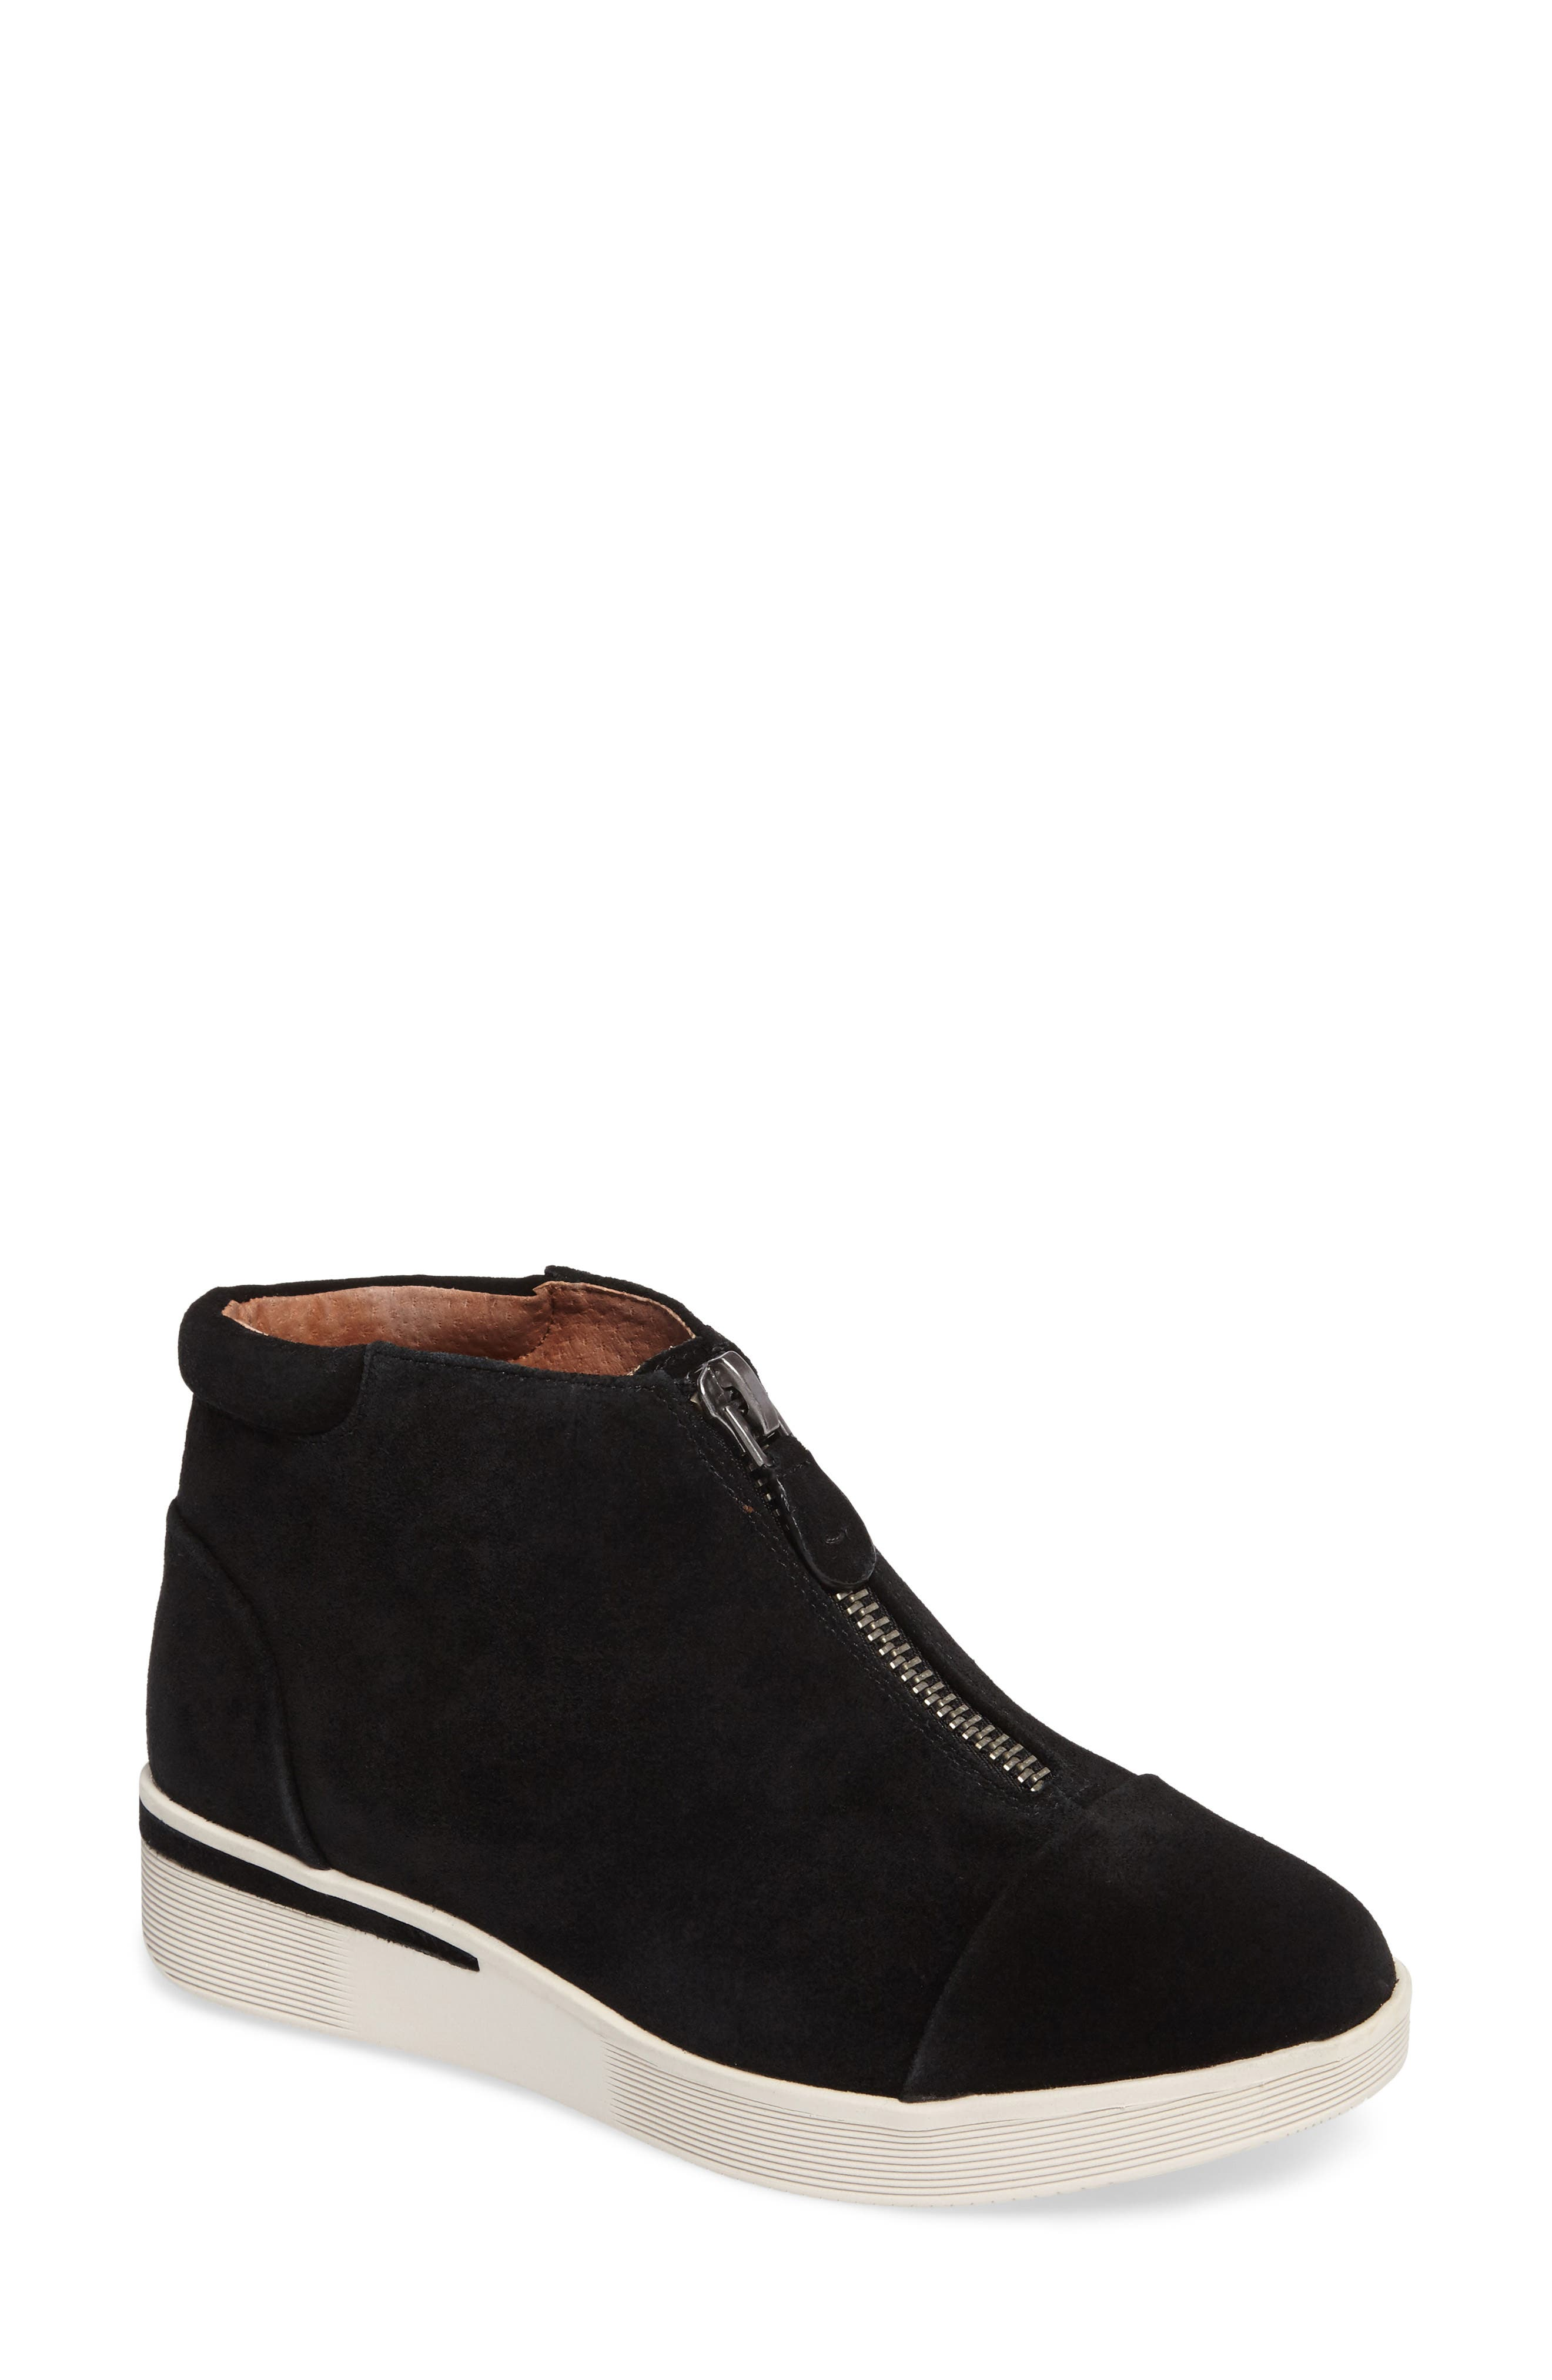 GENTLE SOULS BY KENNETH COLE, Hazel Fay High Top Sneaker, Main thumbnail 1, color, BLACK SUEDE